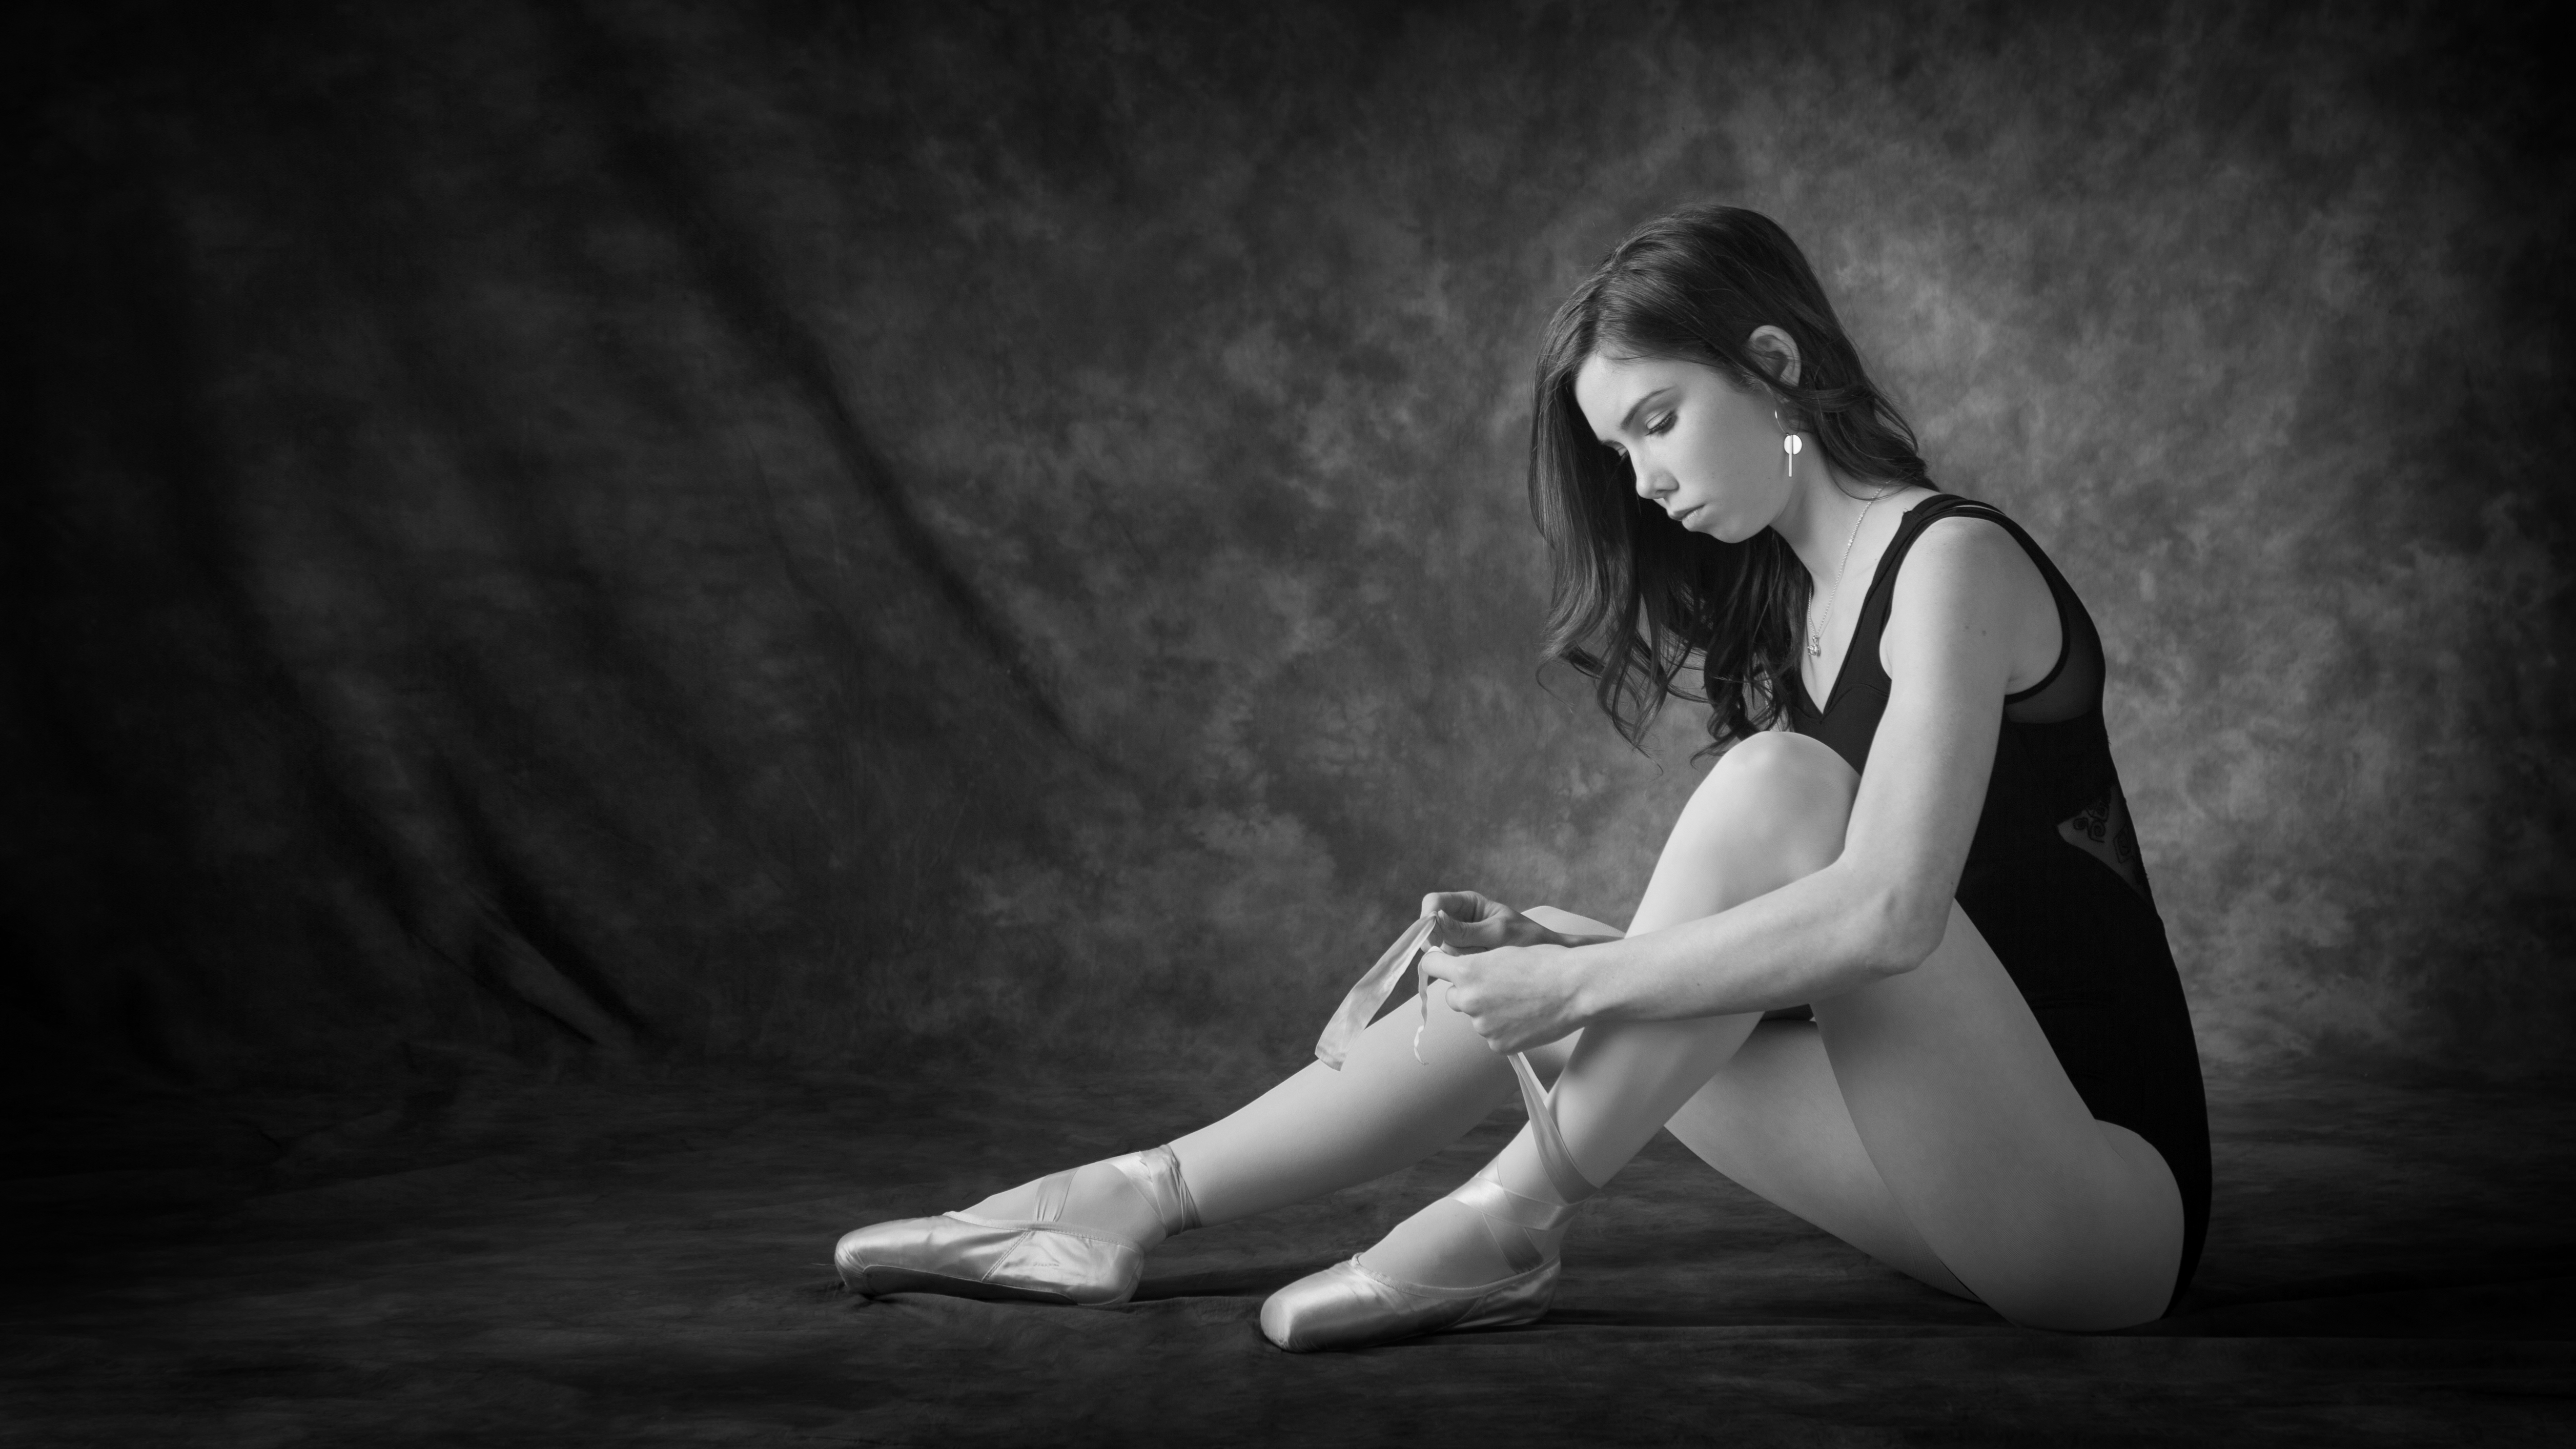 Girl in ballet attire sitting while tying her ballet shoe